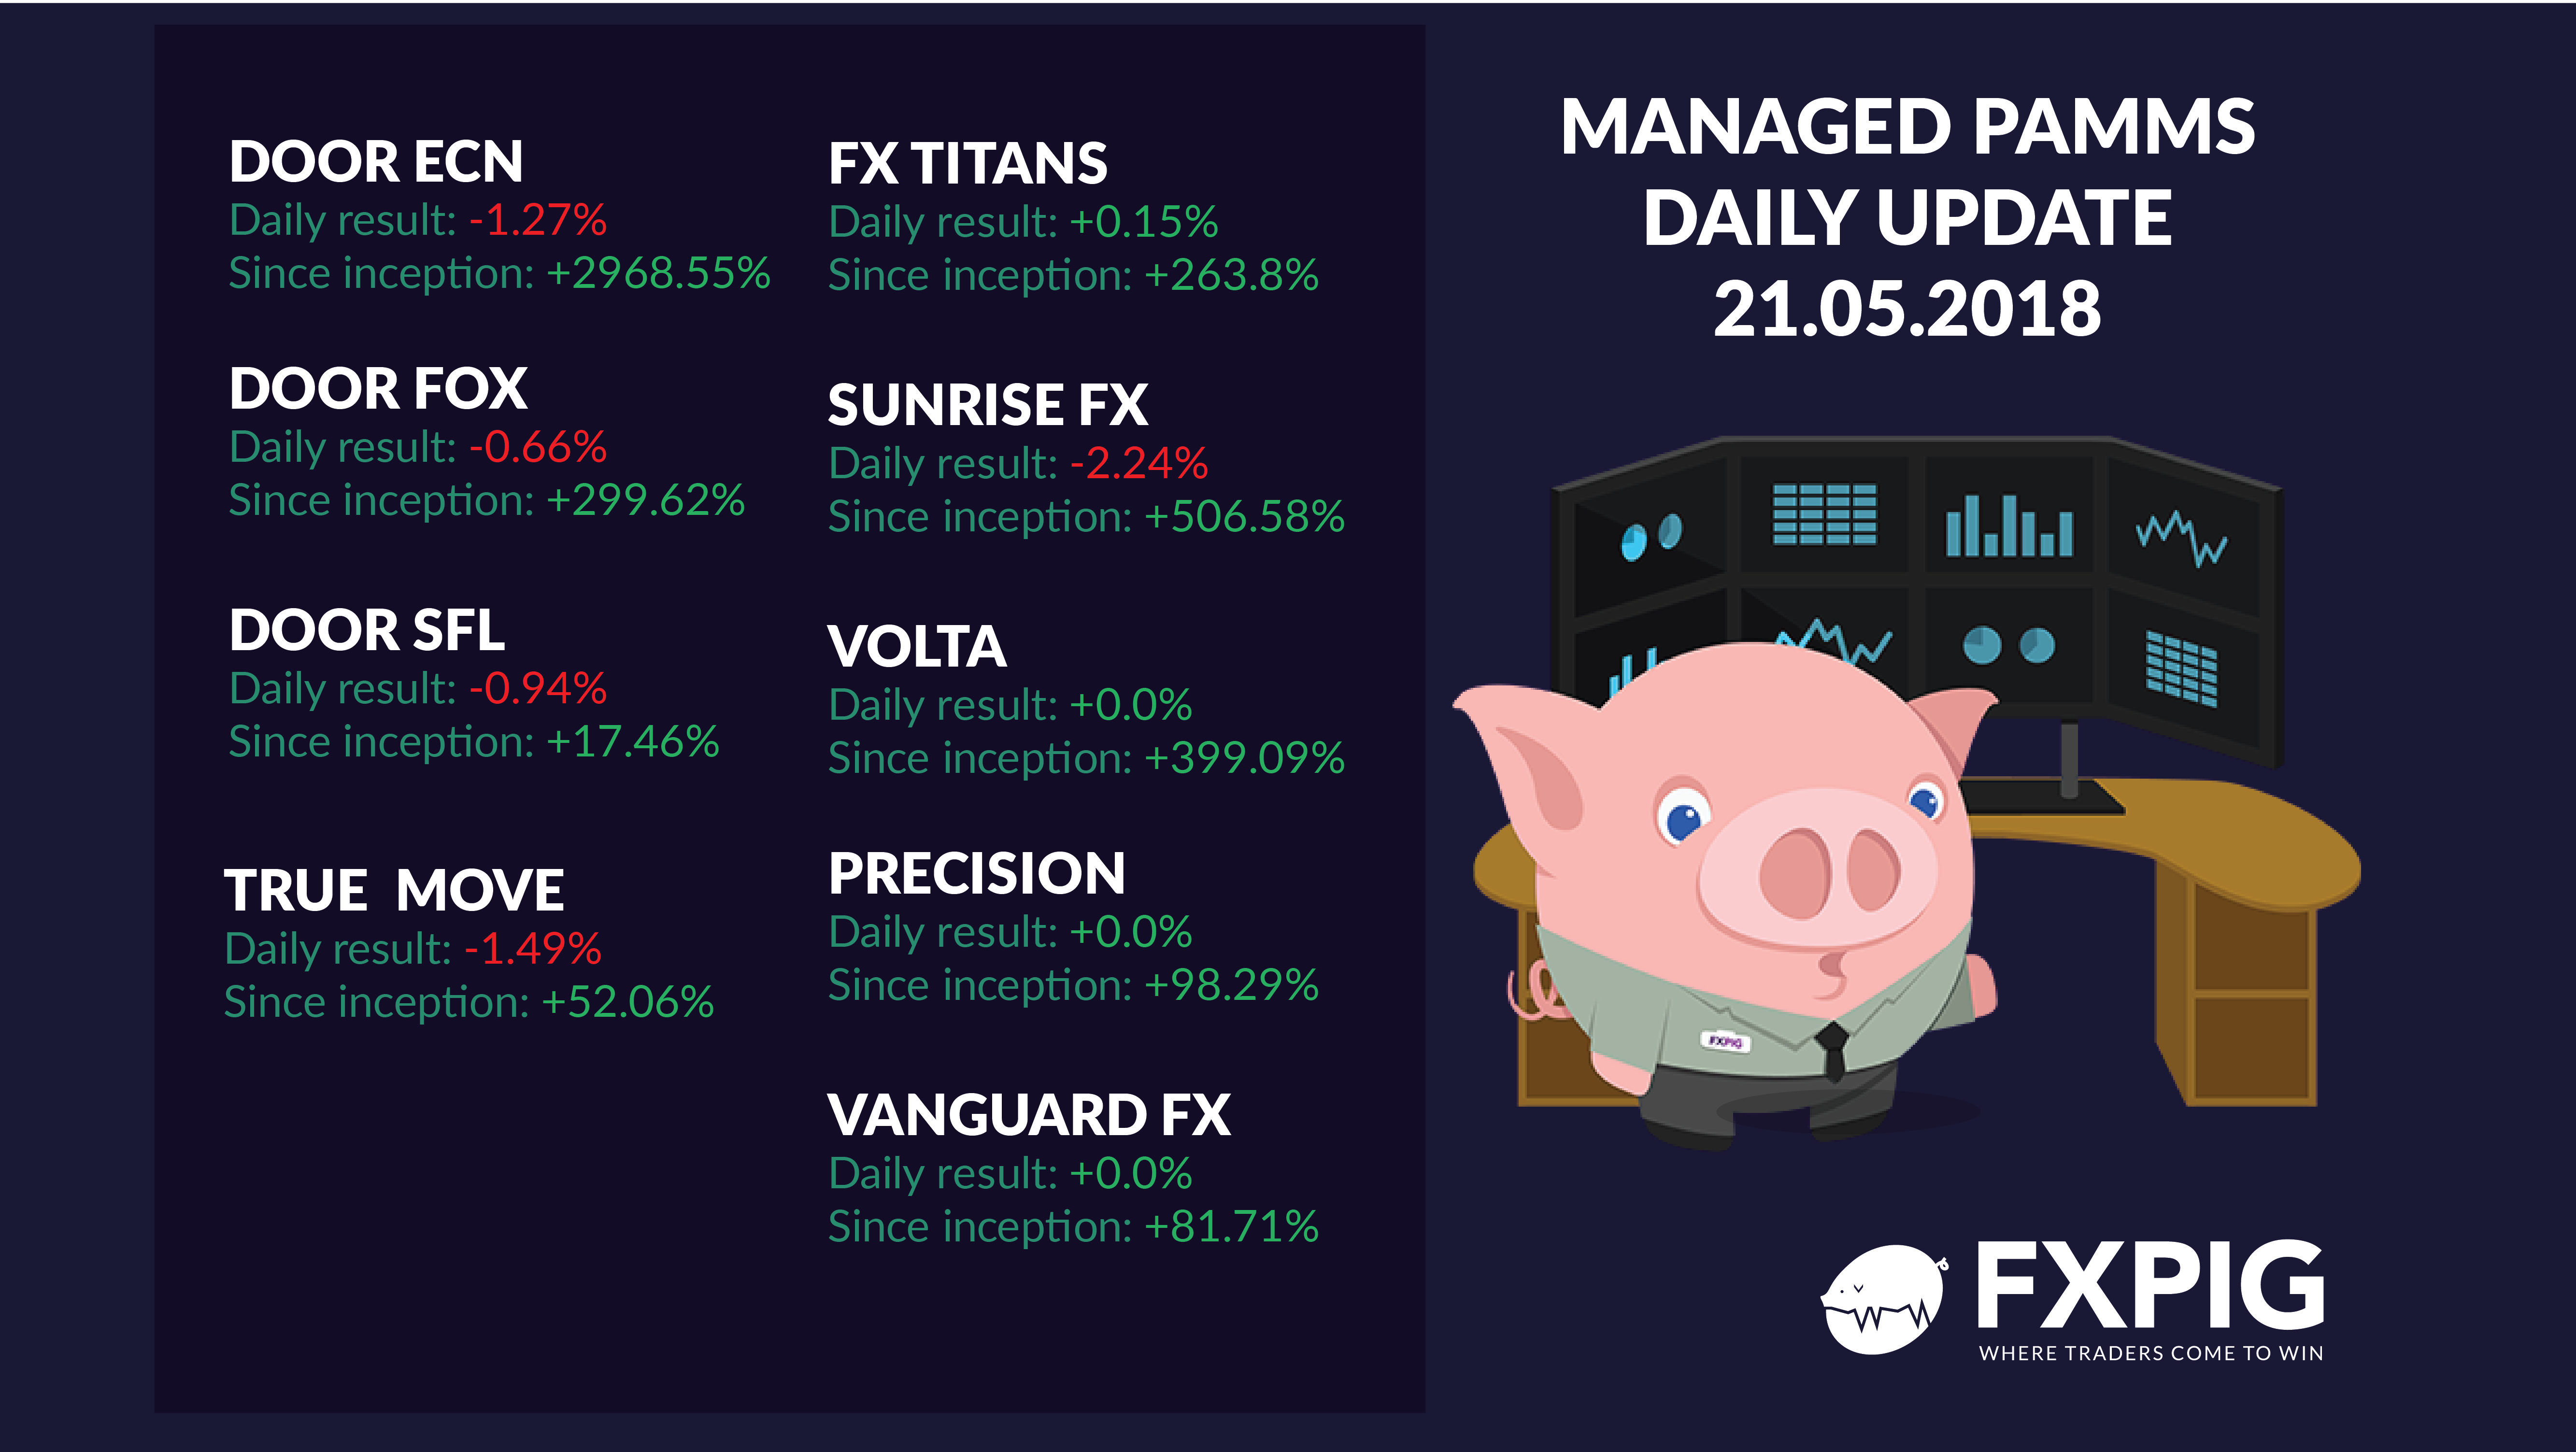 FOREX_Daily-managed-accounts2105_FXPIG